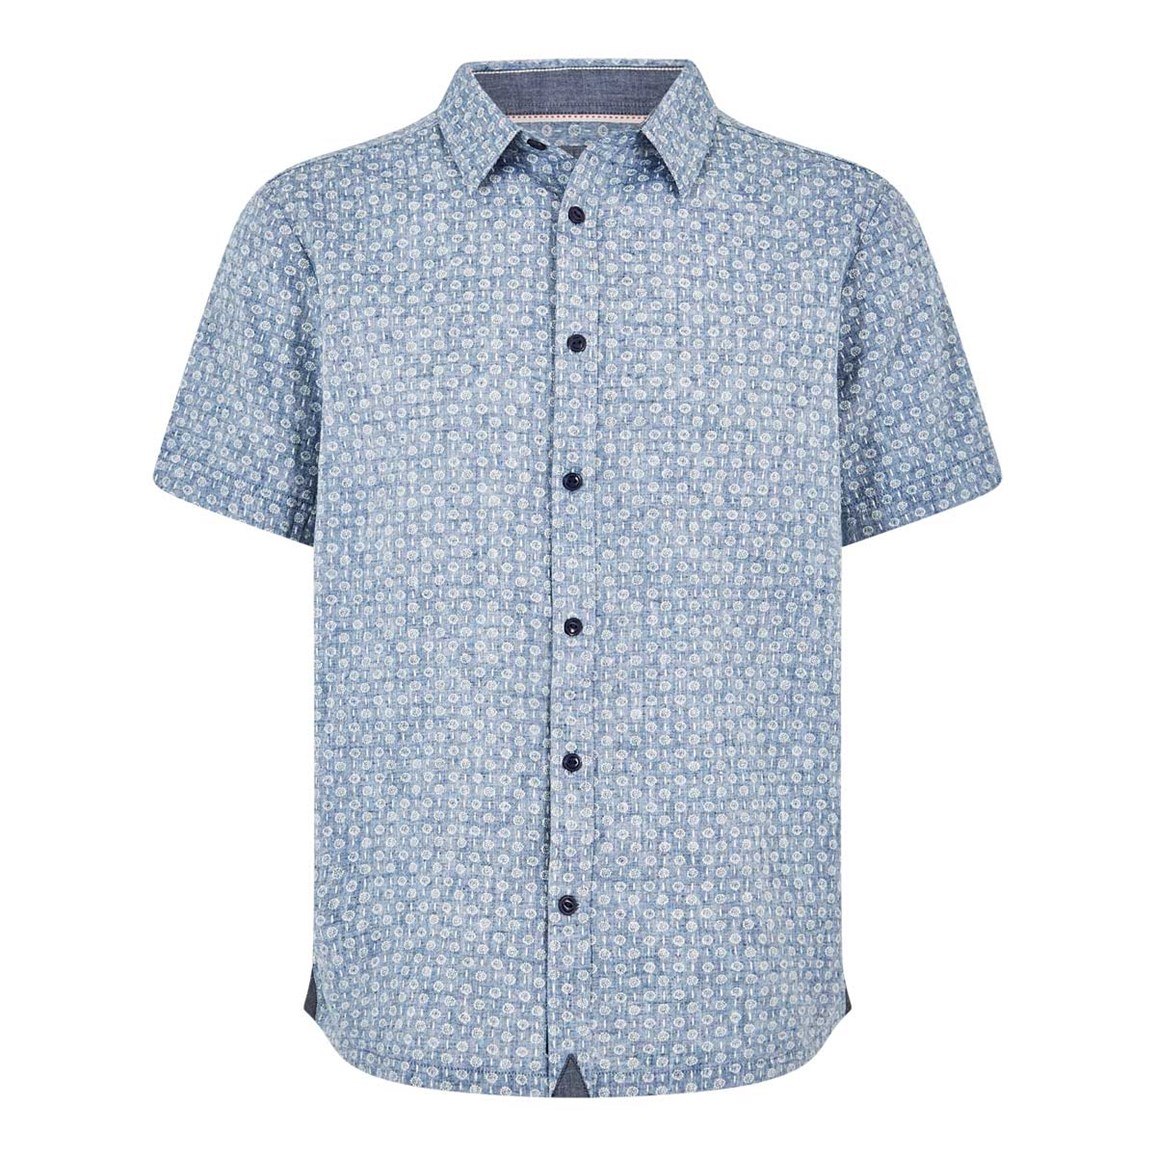 Weird Fish Borgue Linen Mix Printed Short Sleeve Shirt Denim Blue